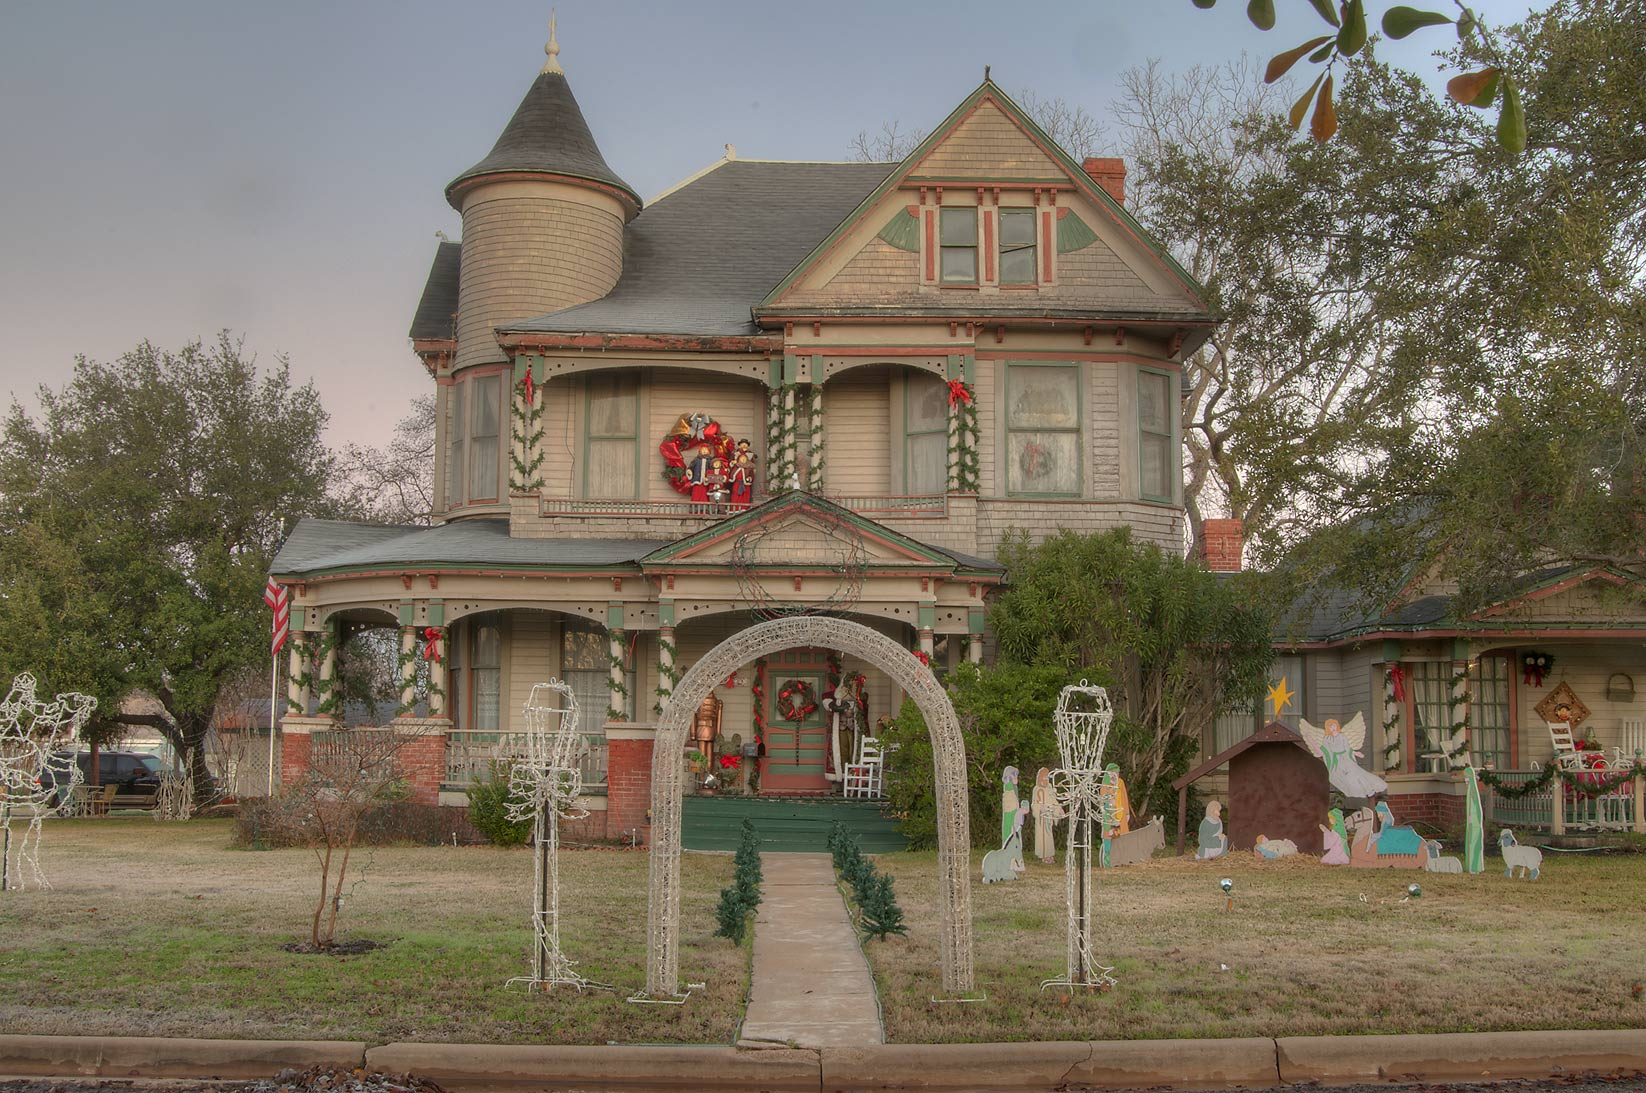 Christmas decorations of the Bird's Nest house...of South Pine streets. Calvert, Texas